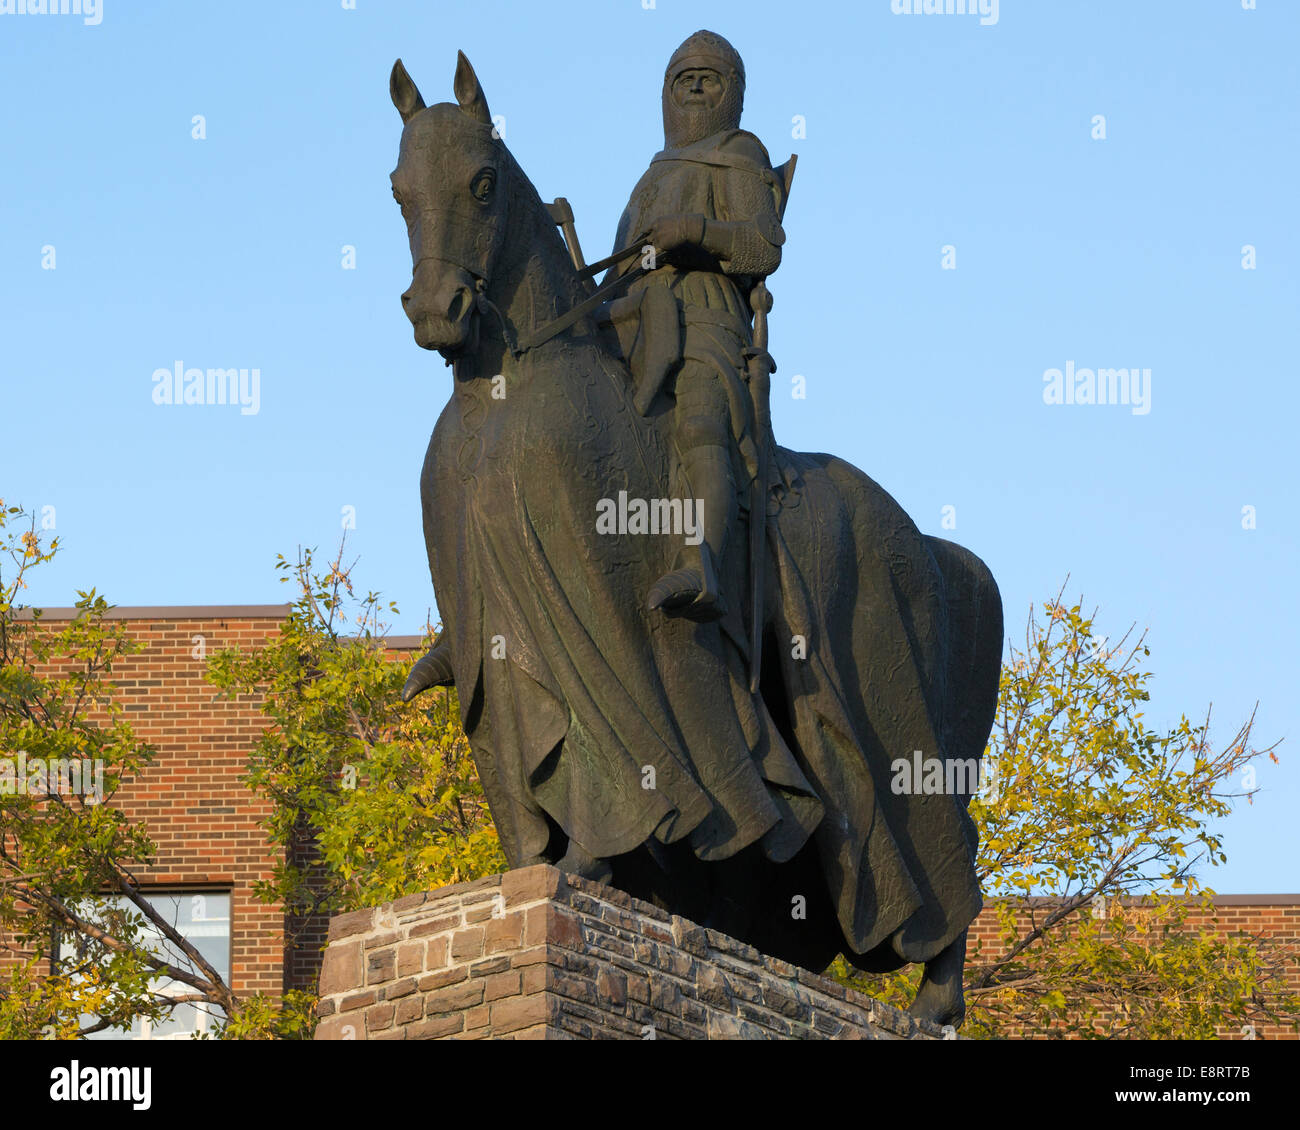 Bronze statue of Robert the Bruce, King of Scots, commemorating the Battle of Bannockburn is identical to one at - Stock Image